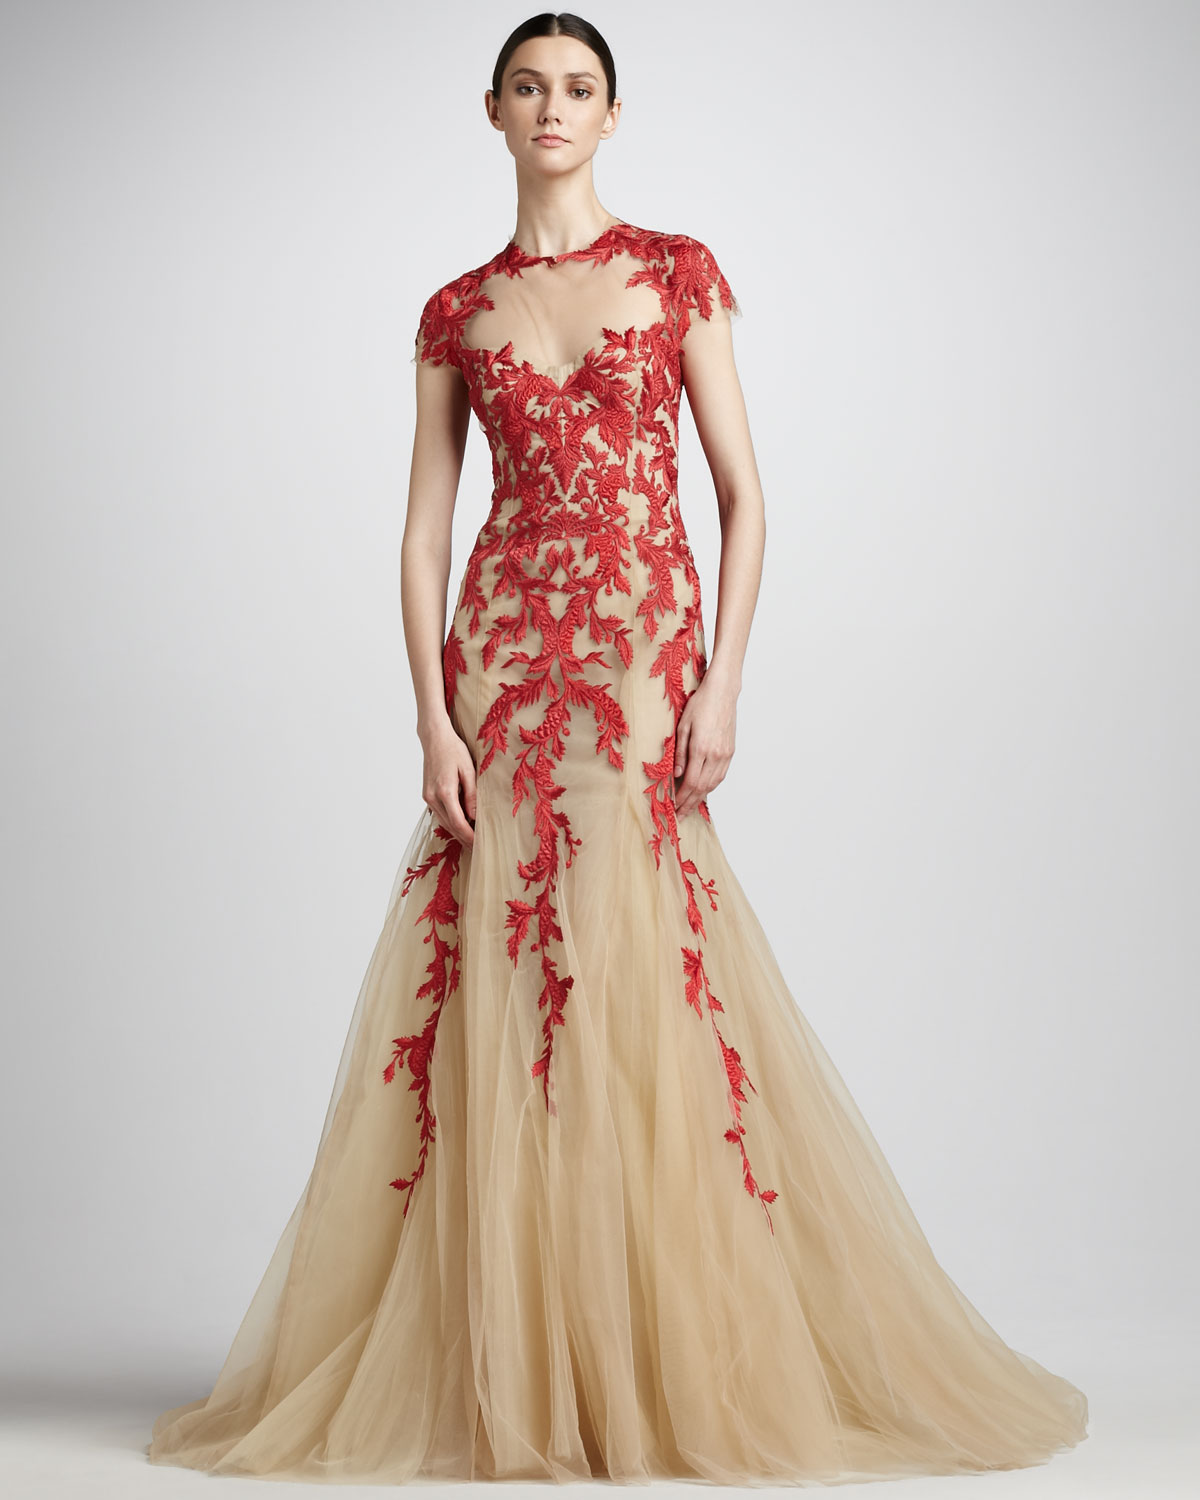 Non Traditional Floral Wedding Dresses: Monique Lhuillier Embroidered Tulle Ballgown In Natural